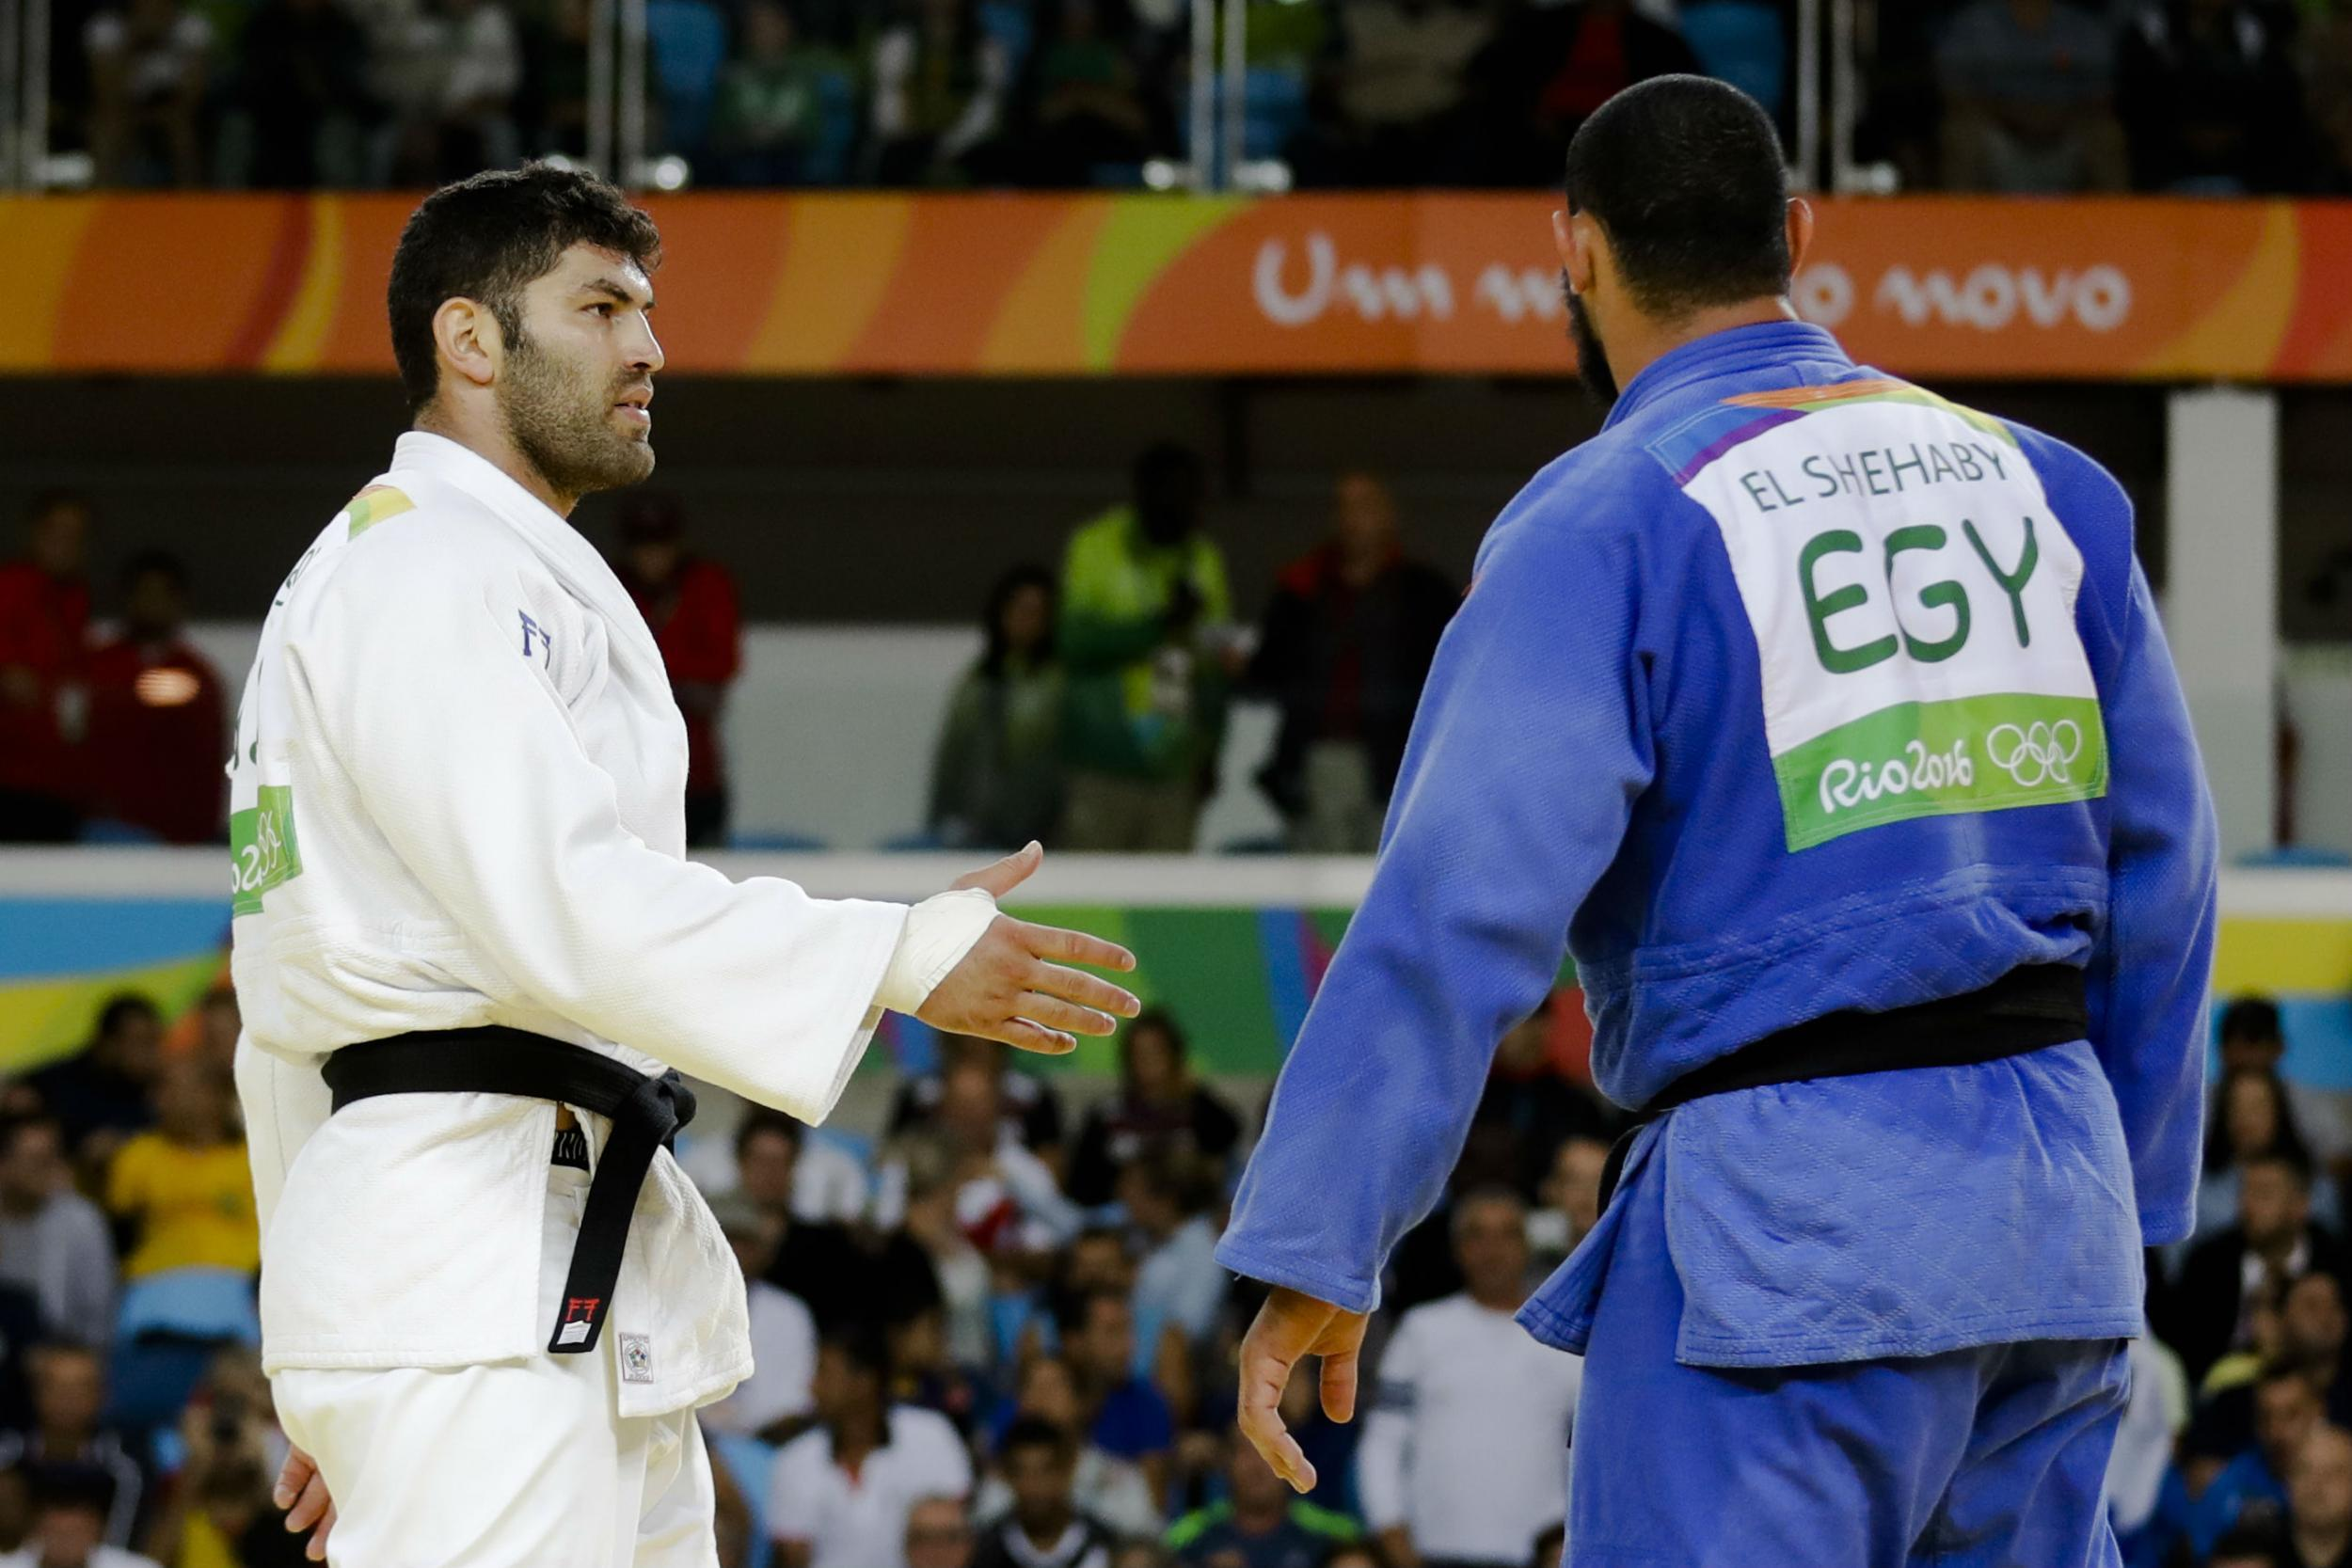 Rio 2016: Egyptian judoka sent home after refusing to shake hand of Israeli opponent